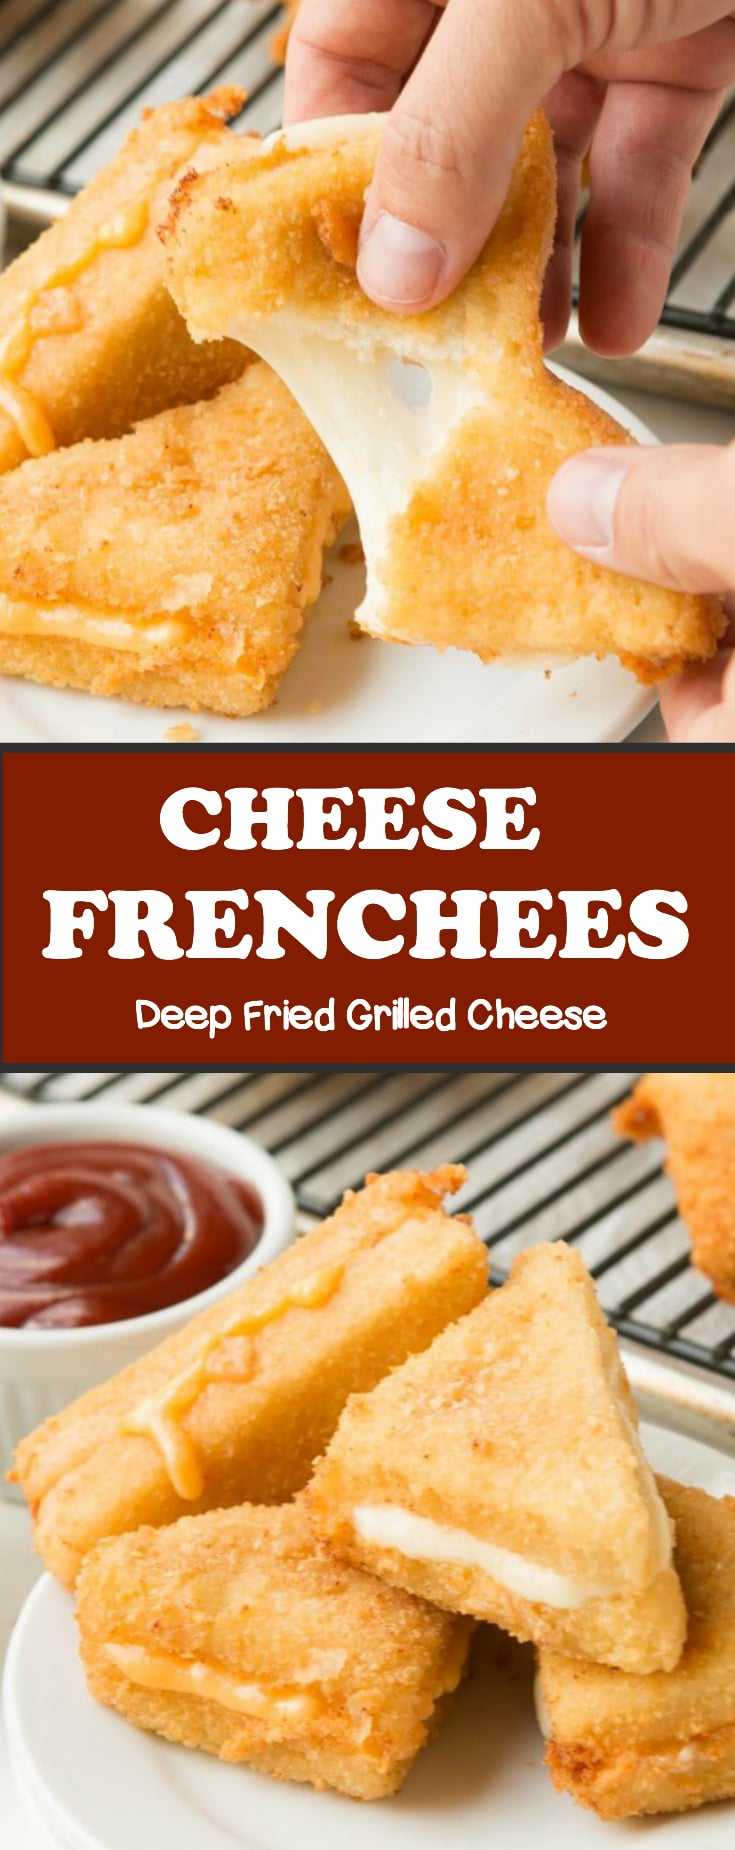 Looking for a classic mid-western recipe? These Cheese frenchees deep fried grilled cheese are a favorite for the super bowl!